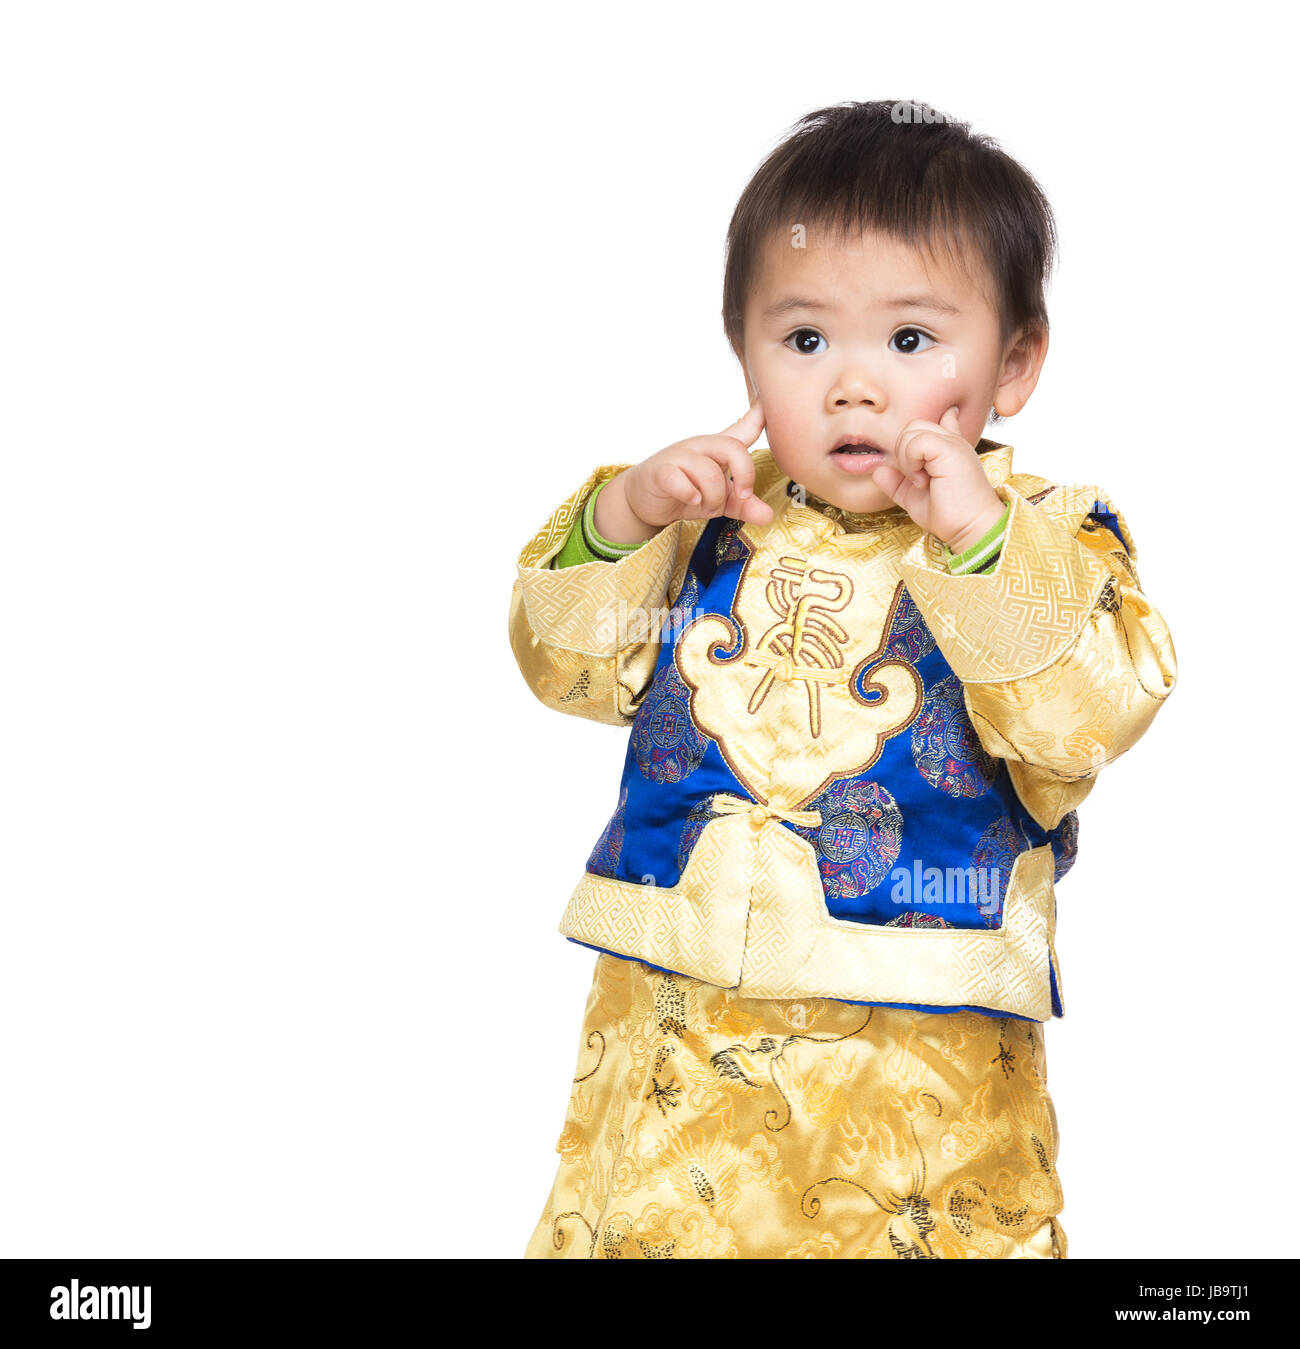 02857ec11 Asian Baby Boy With Chinese Costume And Finger Point To Face Sc 1 St Alamy